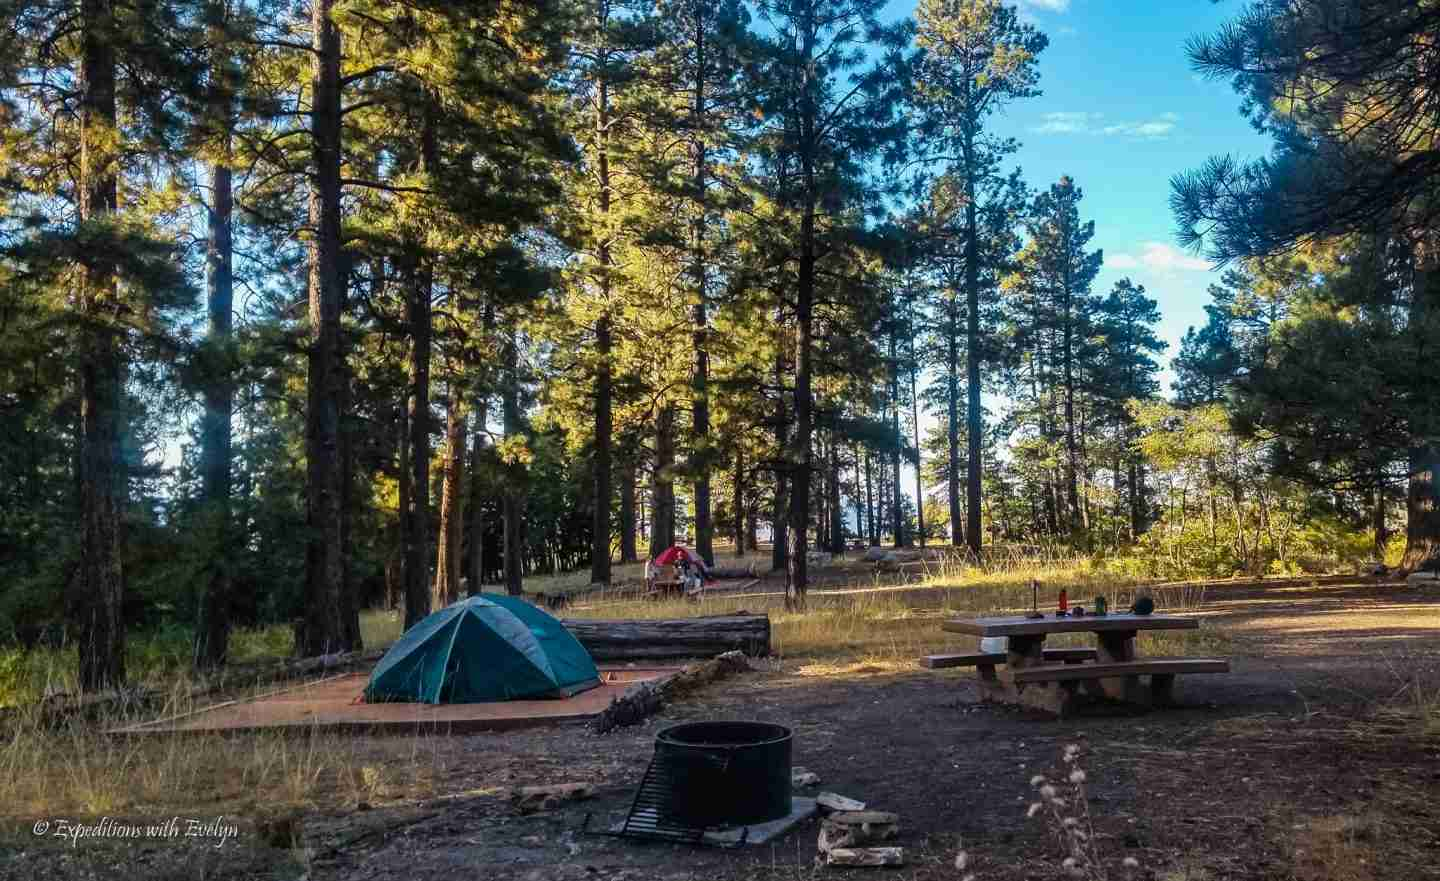 Campsite with a tent, picnic table, and fire pit amongst tall trees near the Rim of the Grand Canyon